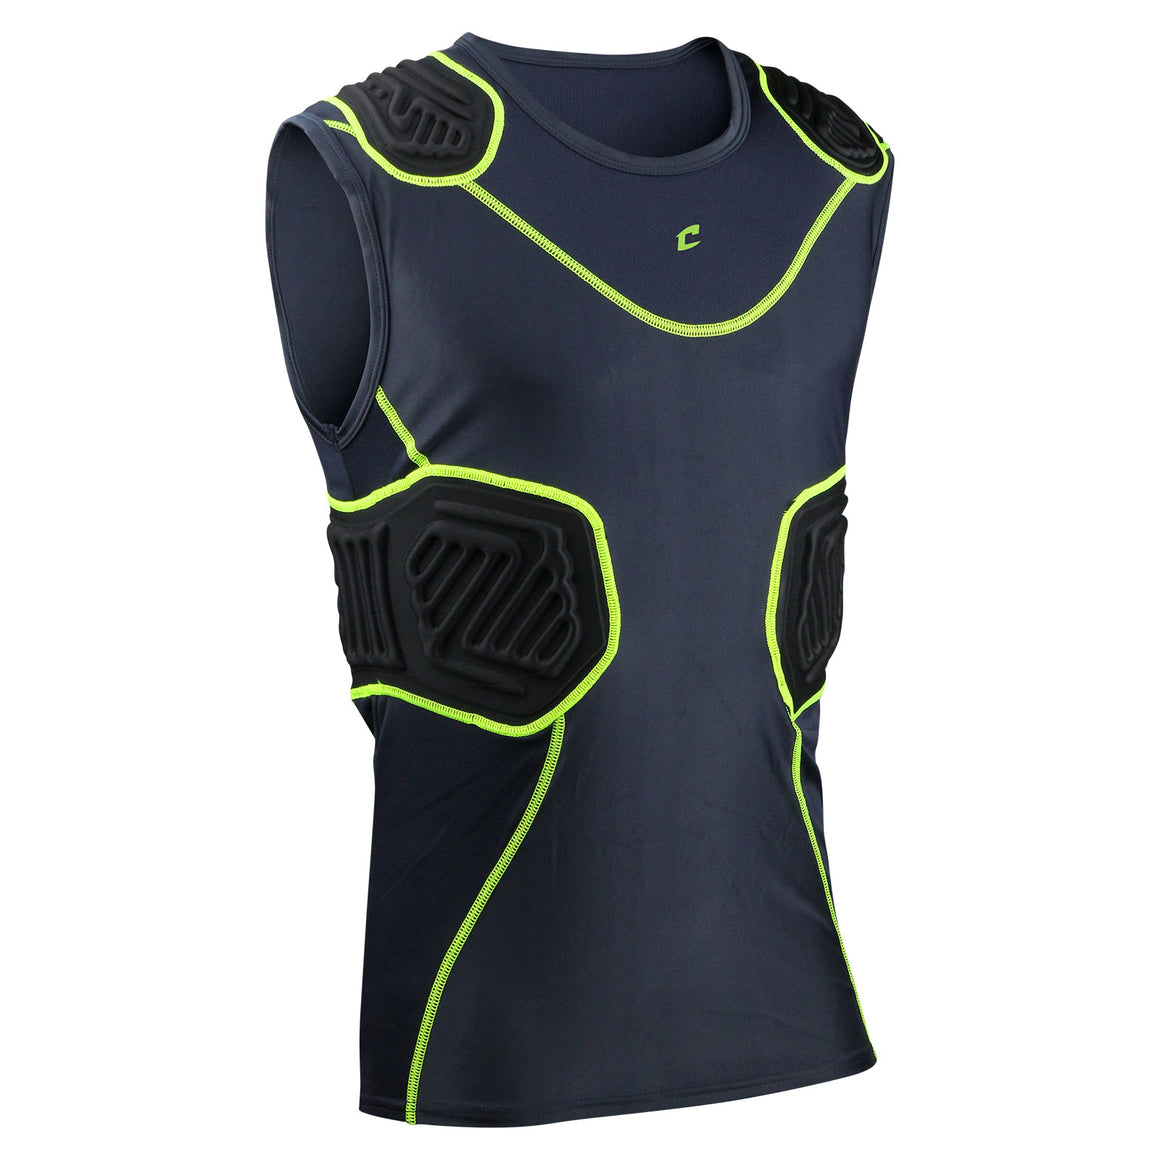 Multi-Sports Padded Shirt